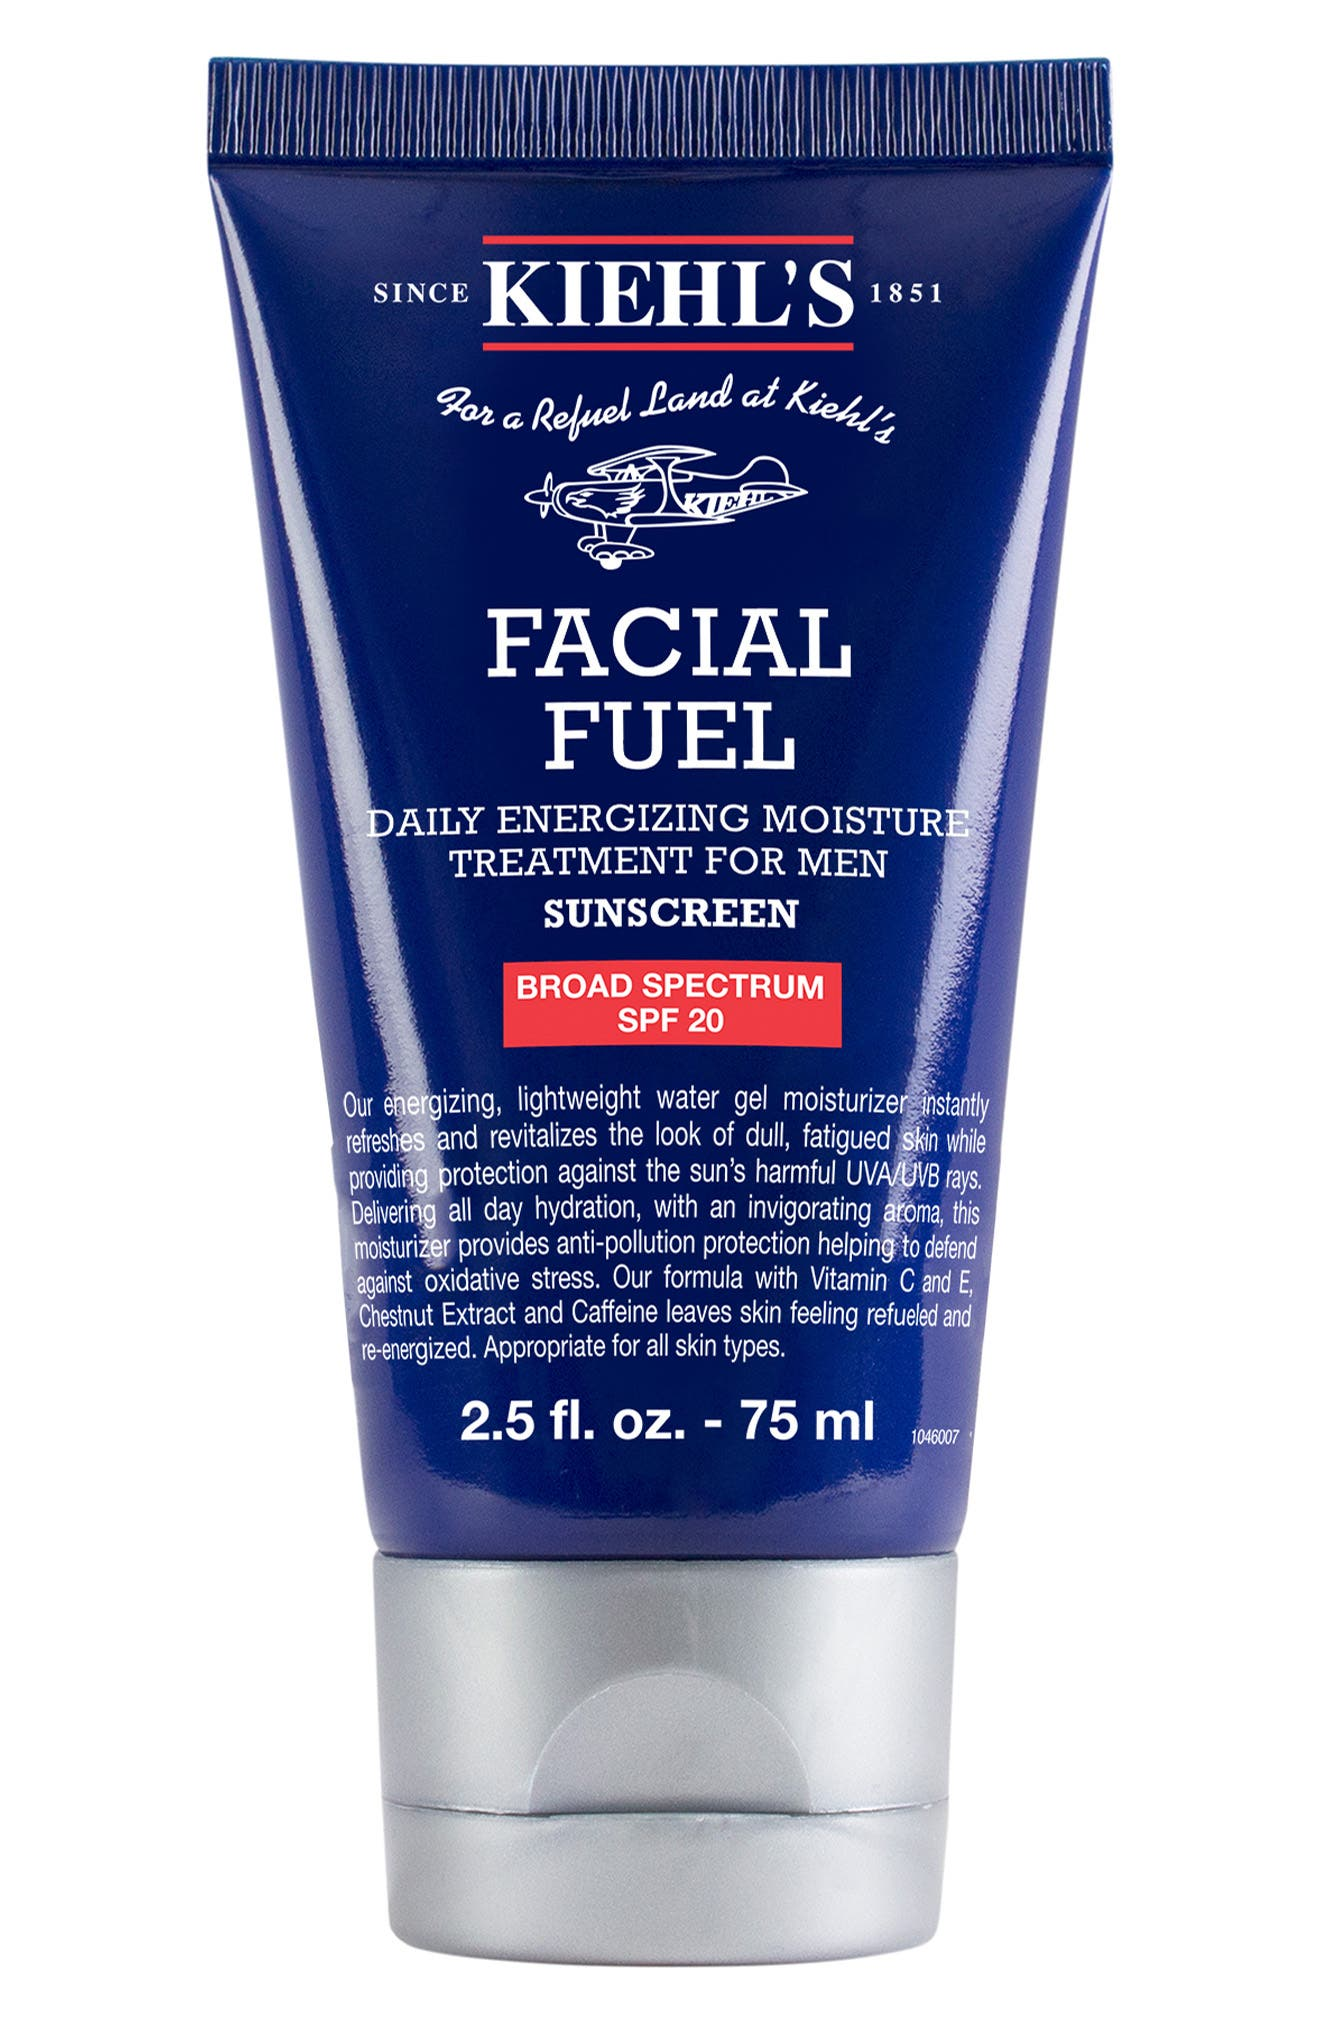 1851 Facial Fuel Daily Energizing Moisture Treatment For Men Spf 20